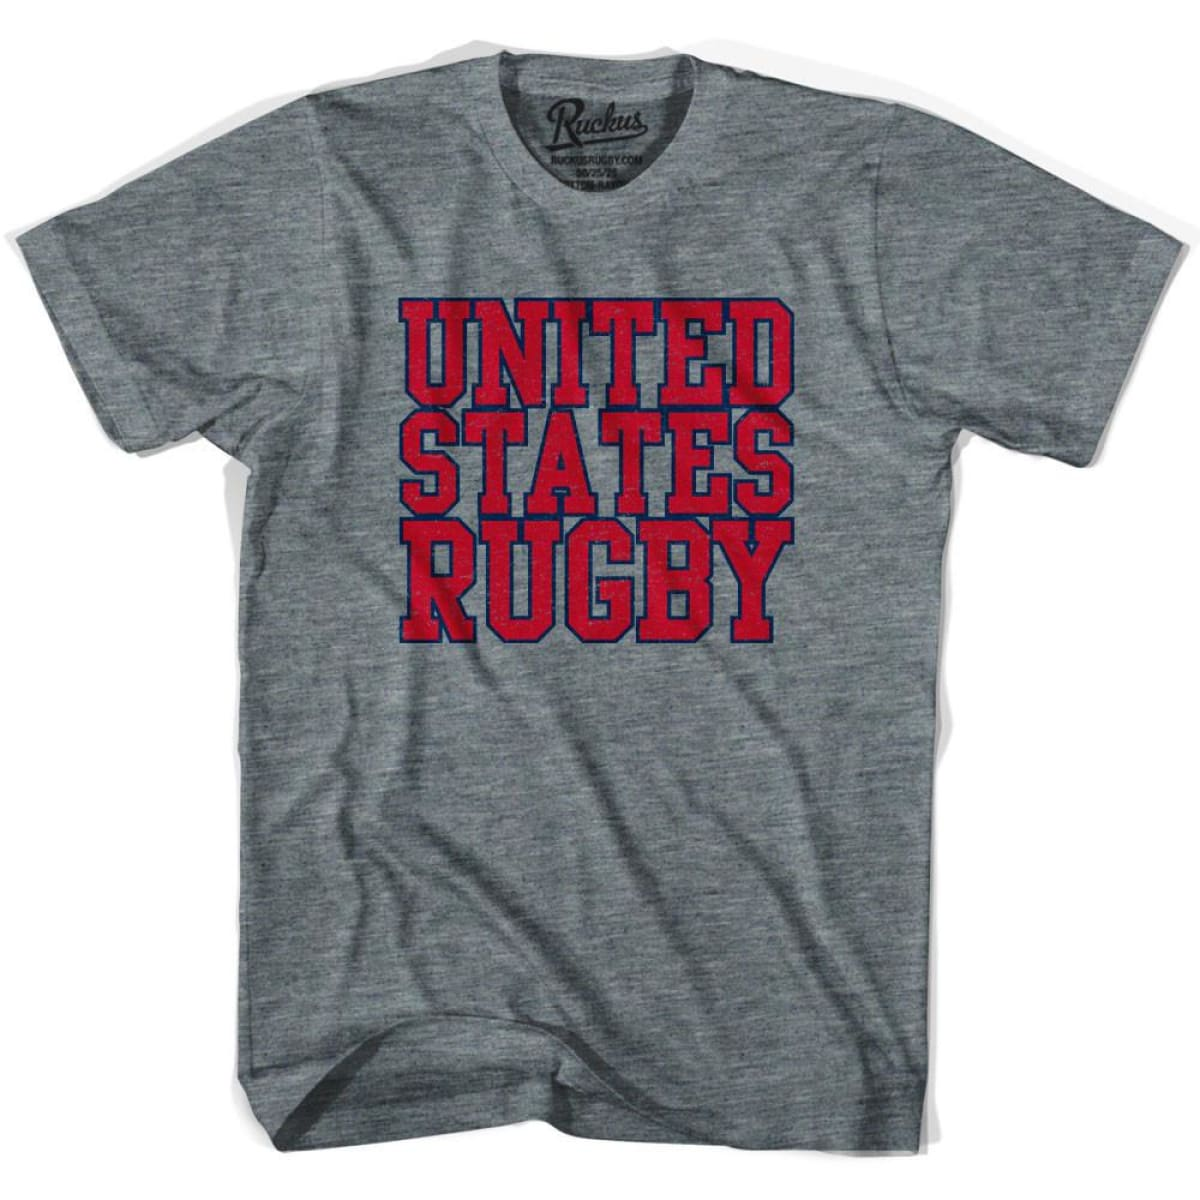 United States (Red Version) Rugby Nations T-shirt - Athletic Grey / Adult Small - Rugby T-shirt